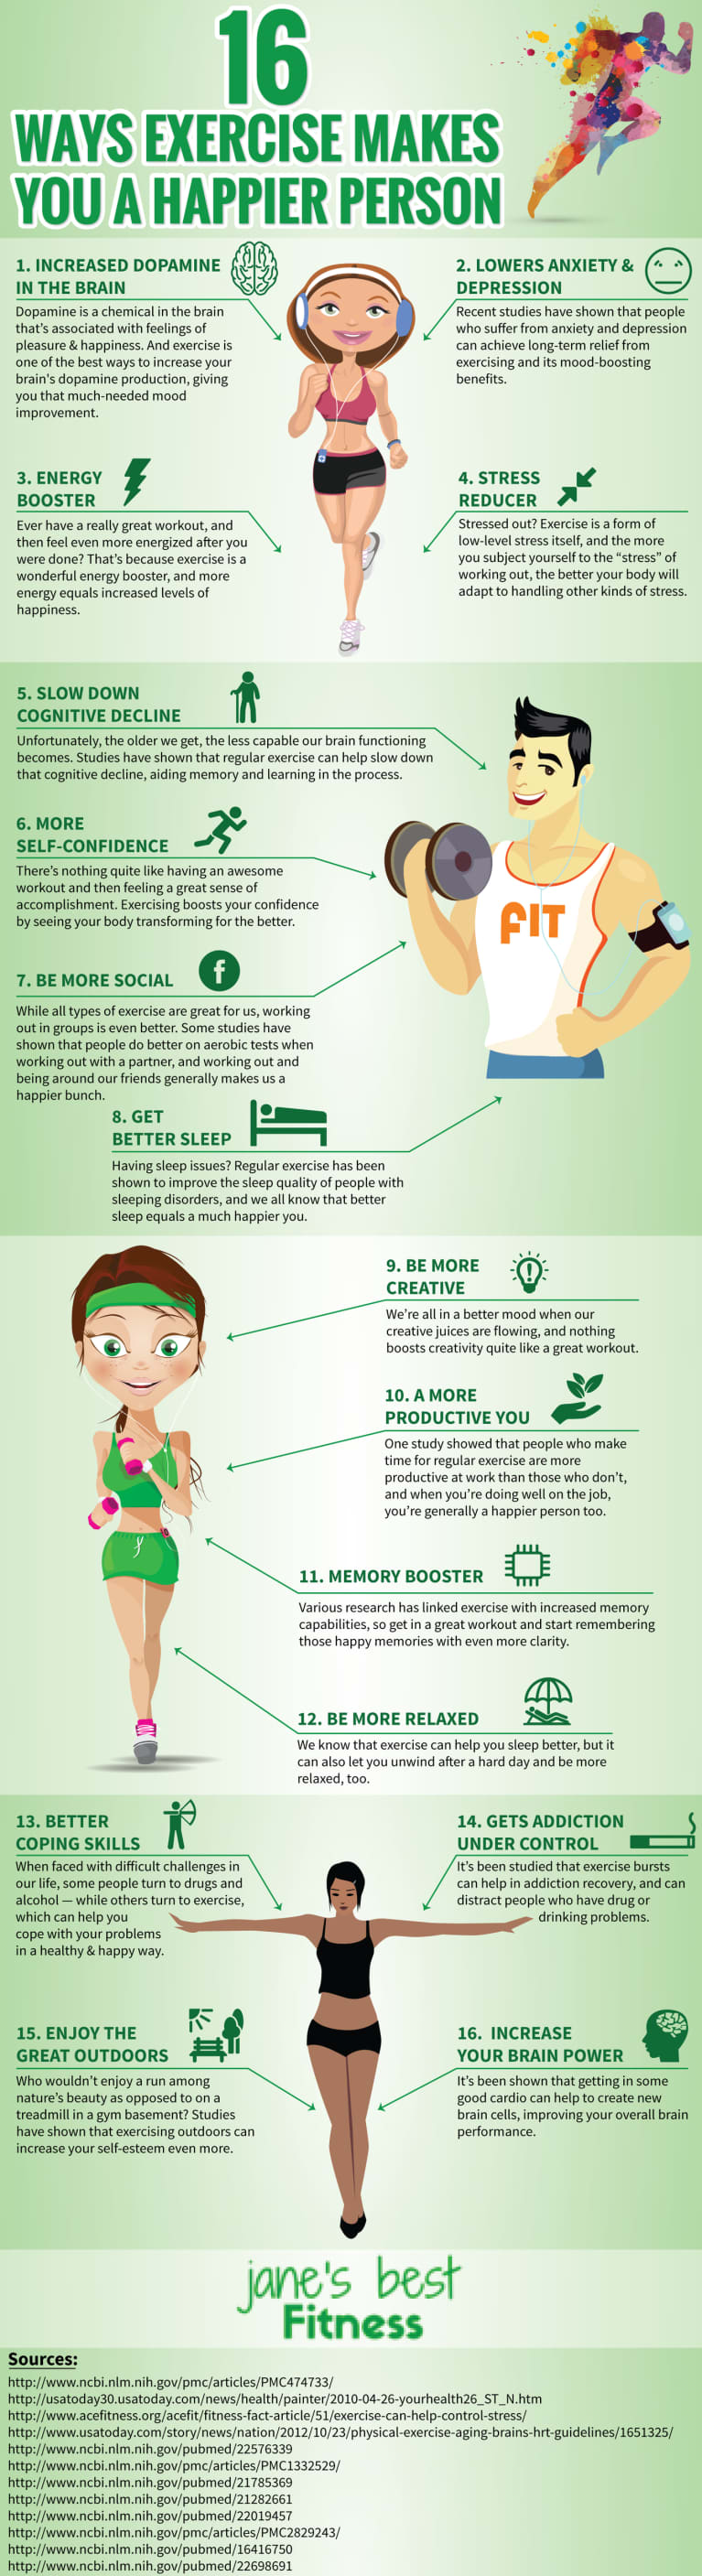 16 Ways Exercise Makes You Happier (Infographic)